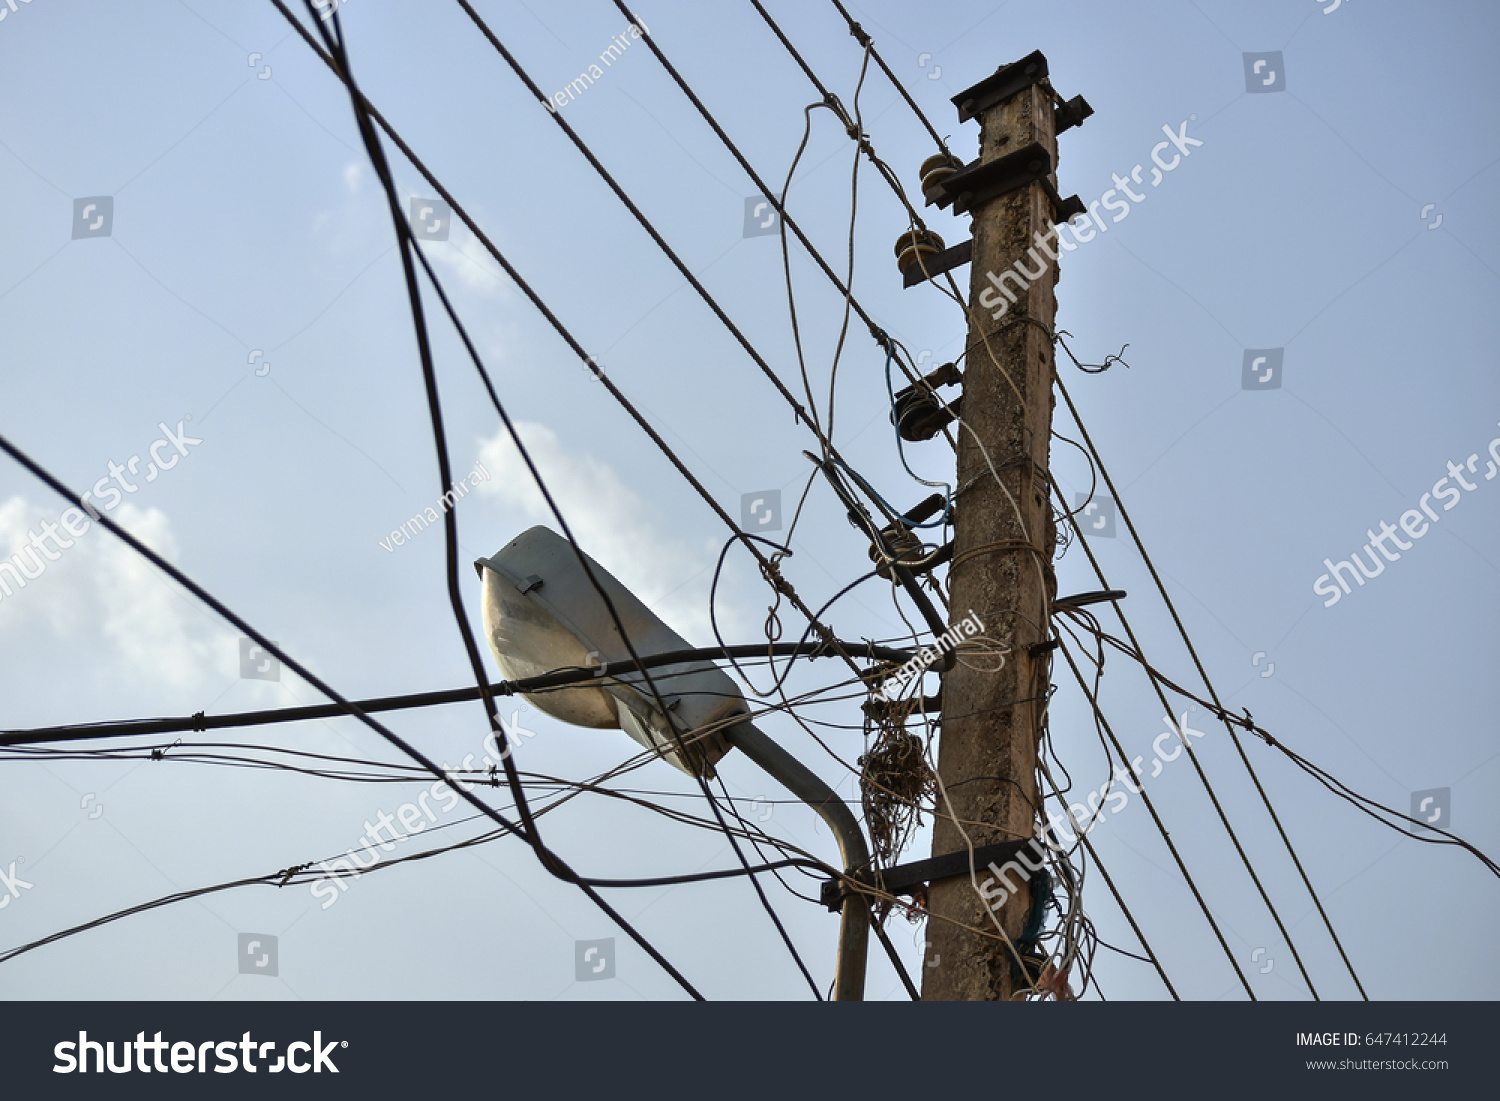 Street Light Messed Wires Stock Photo (Royalty Free) 647412244 ...